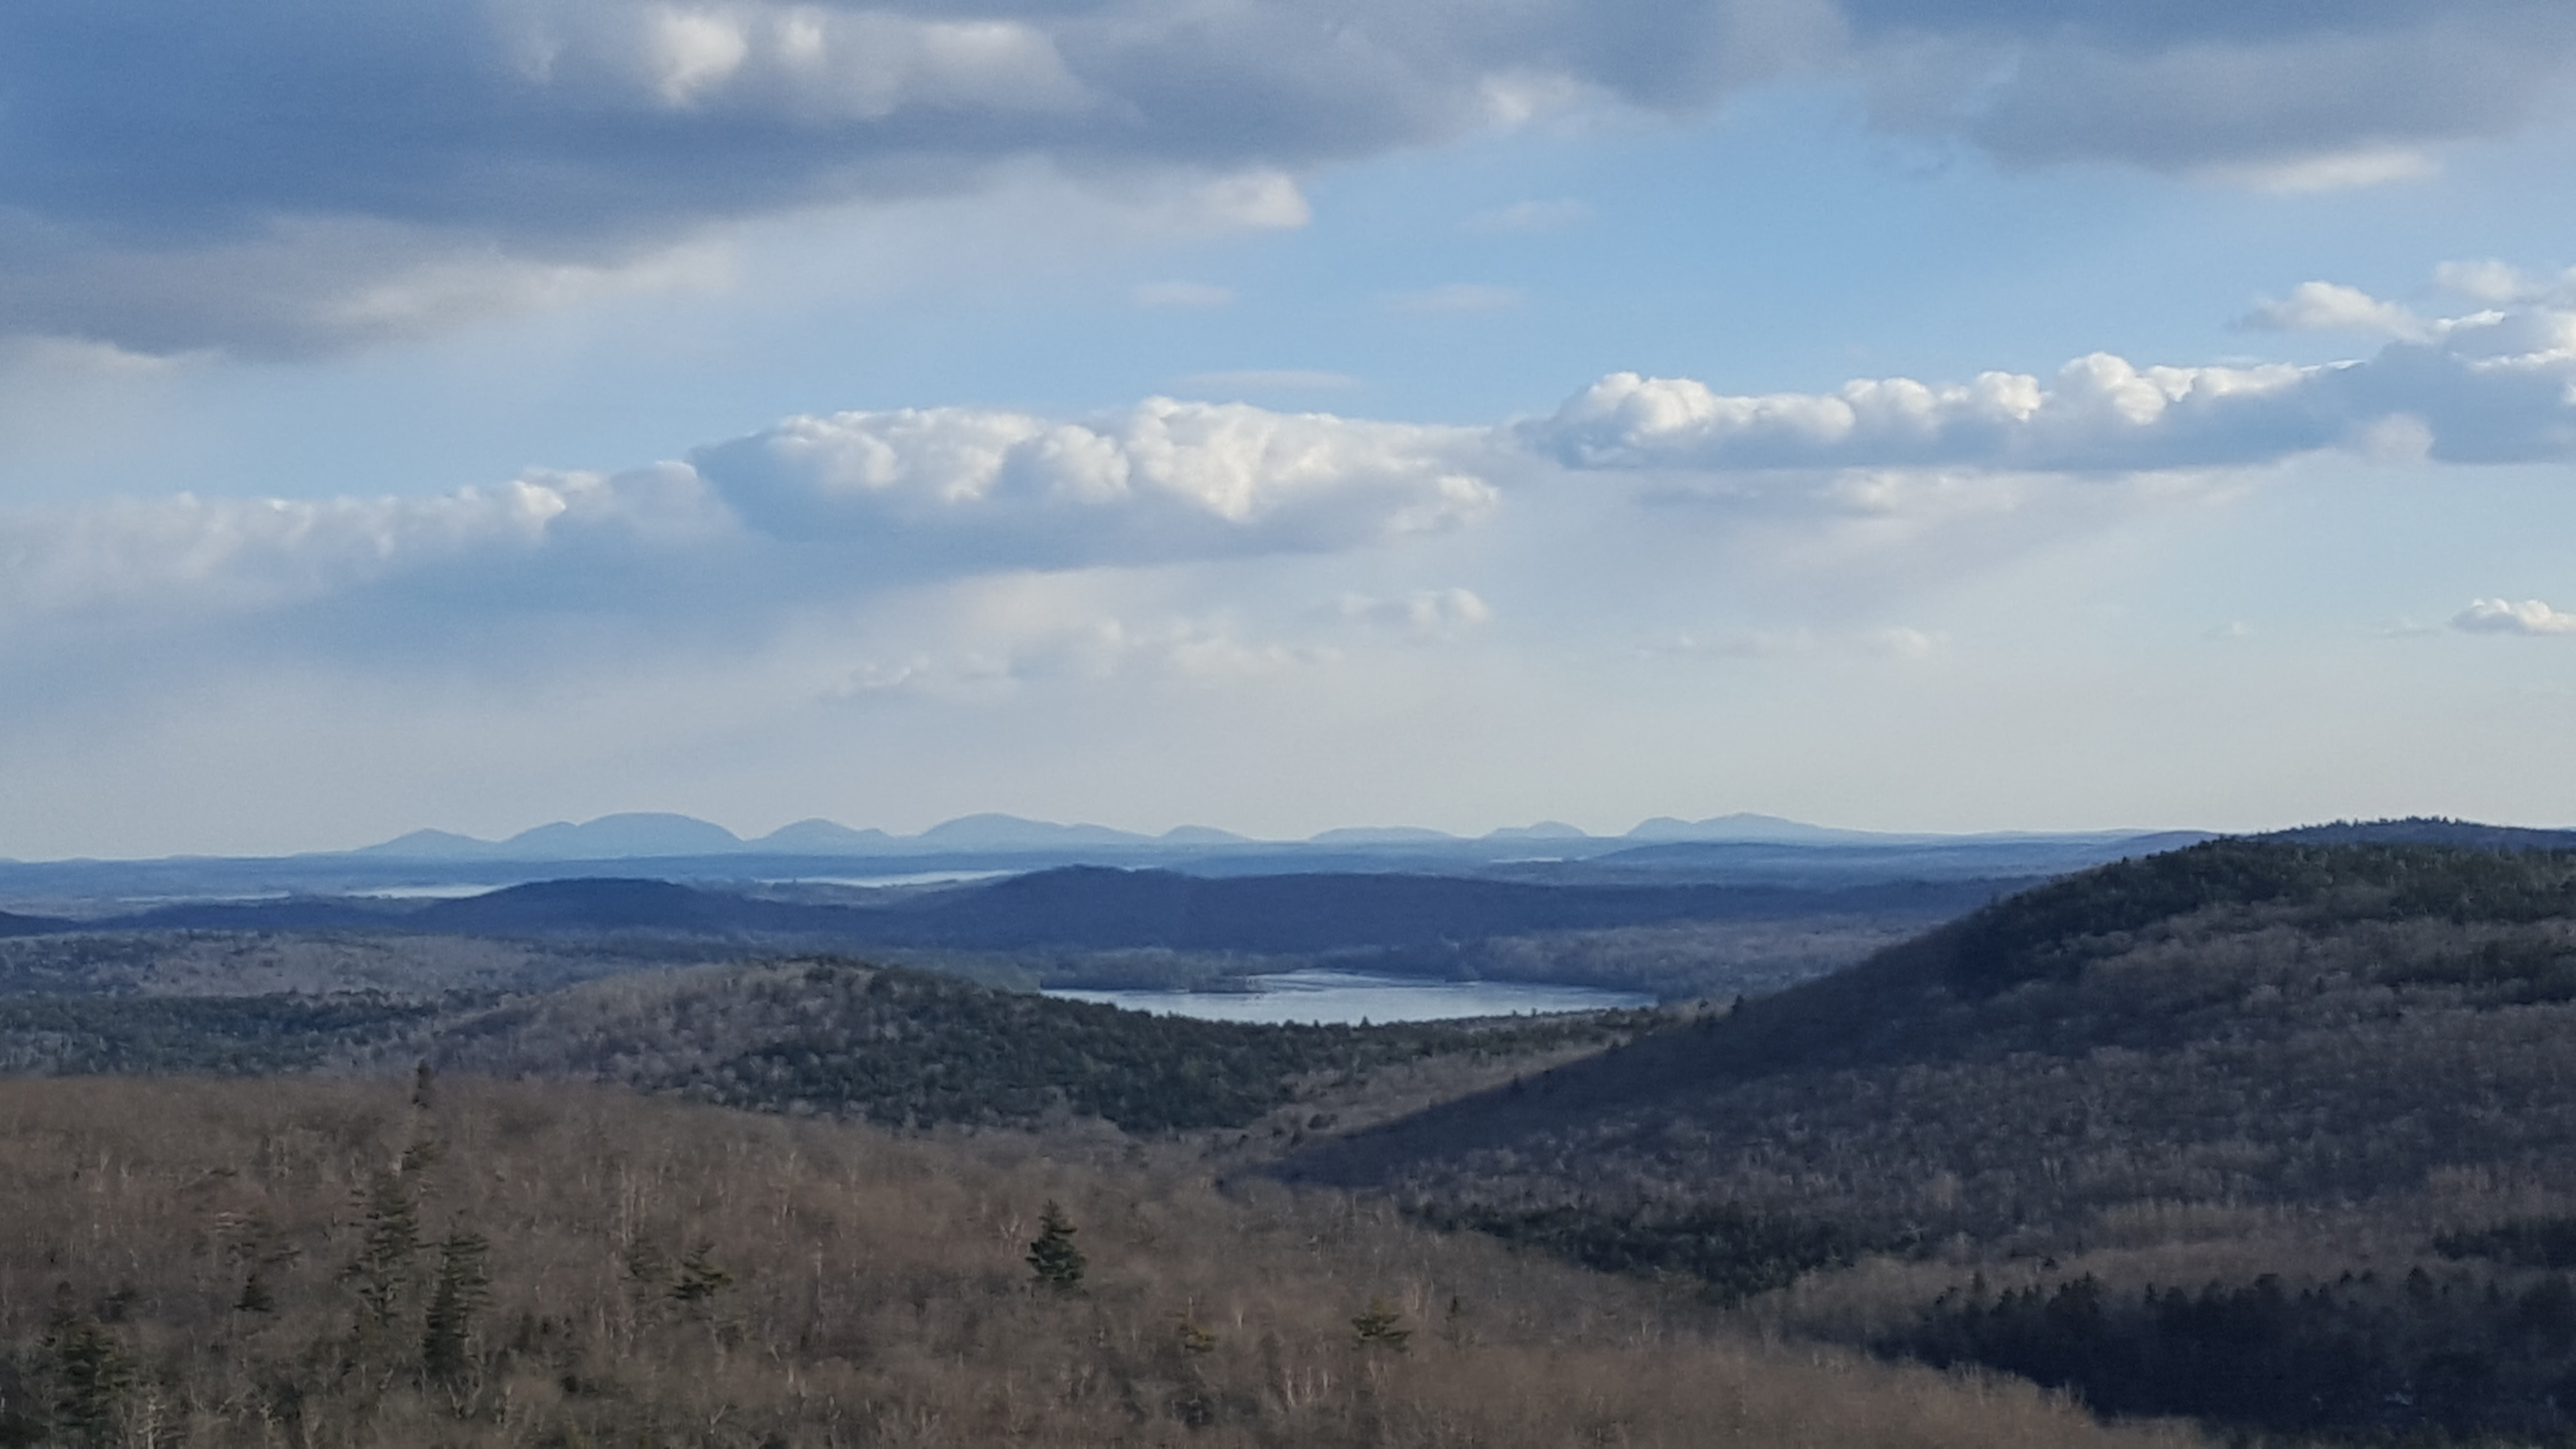 Beginner's Guide to hiking in Bangor- 5 Day Hikes in the Greater Bangor Area